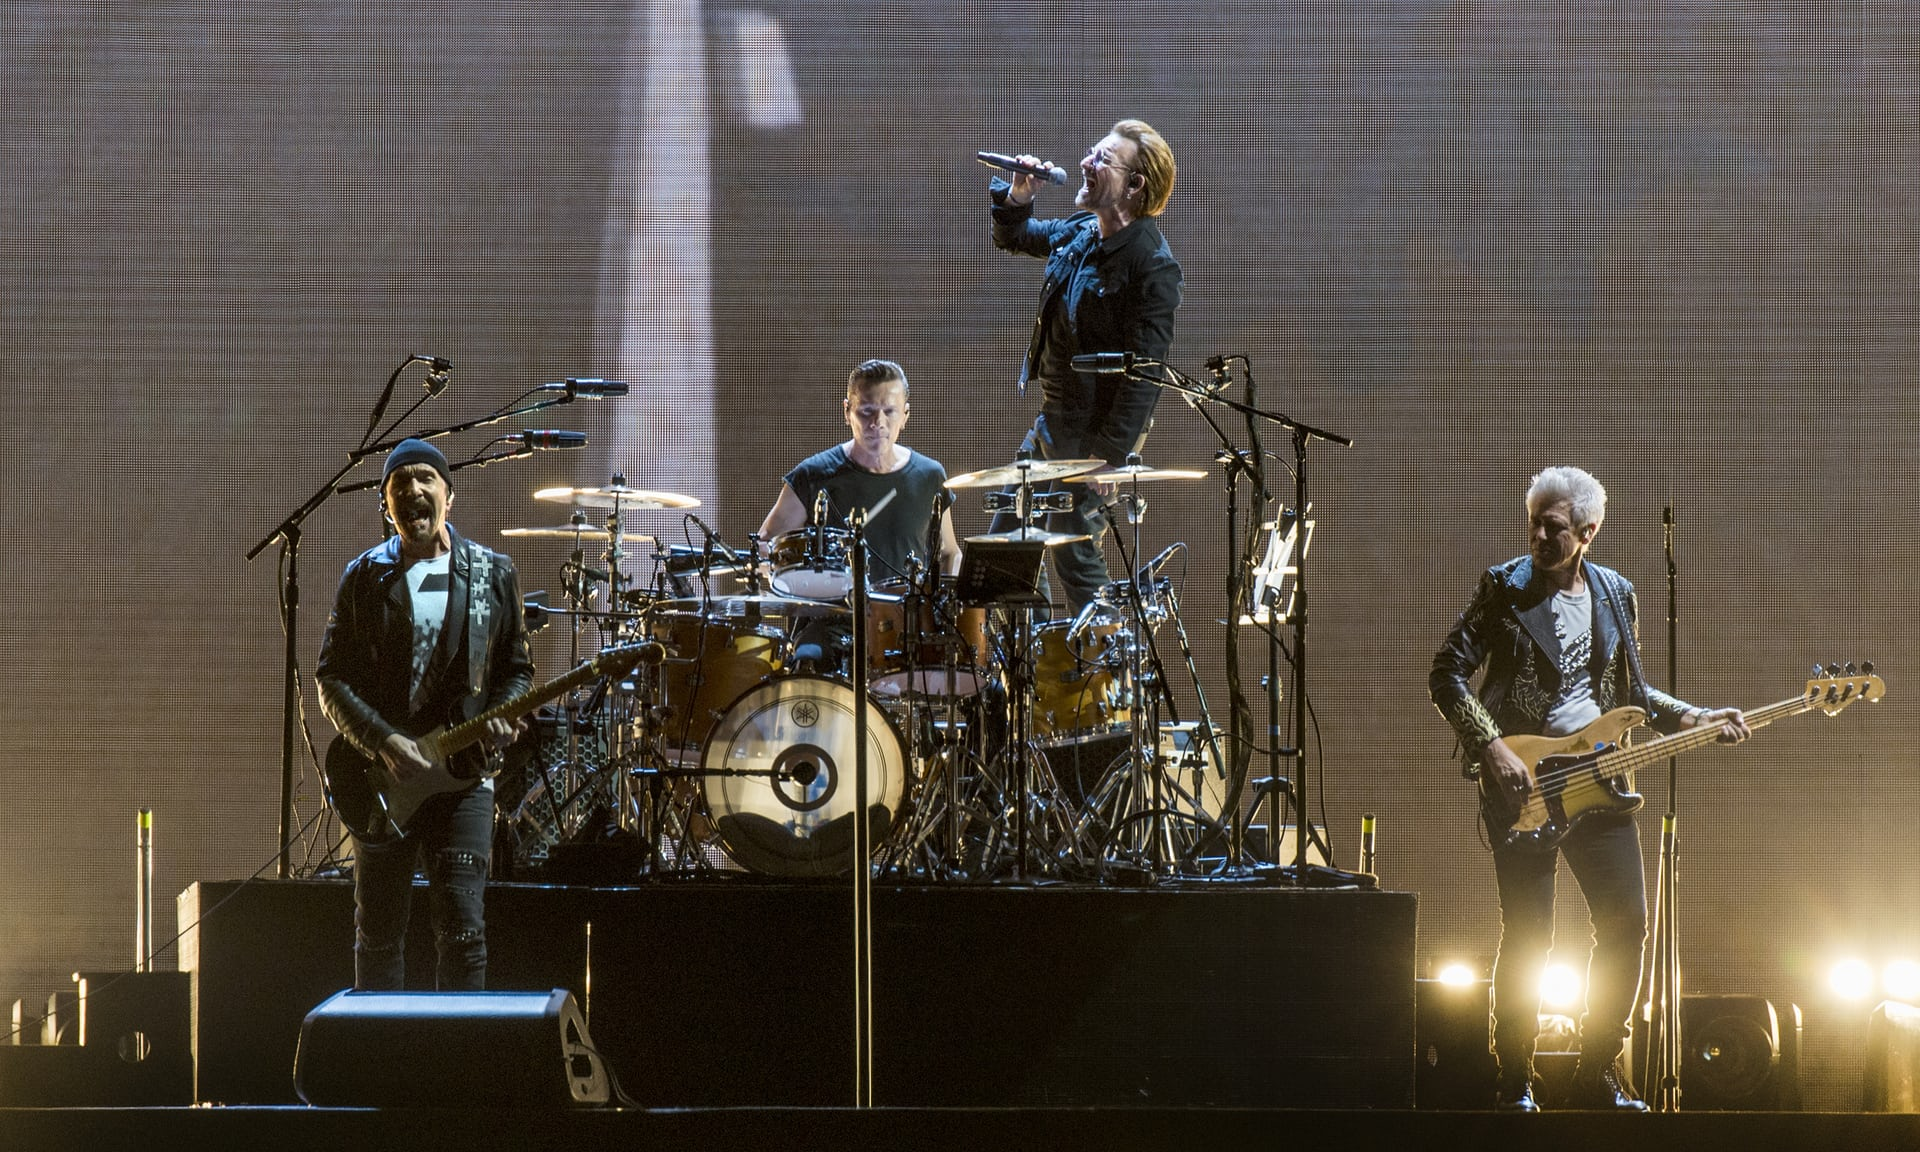 U2 Cancel Tonight's St. Louis Concert Due to Lack of Security